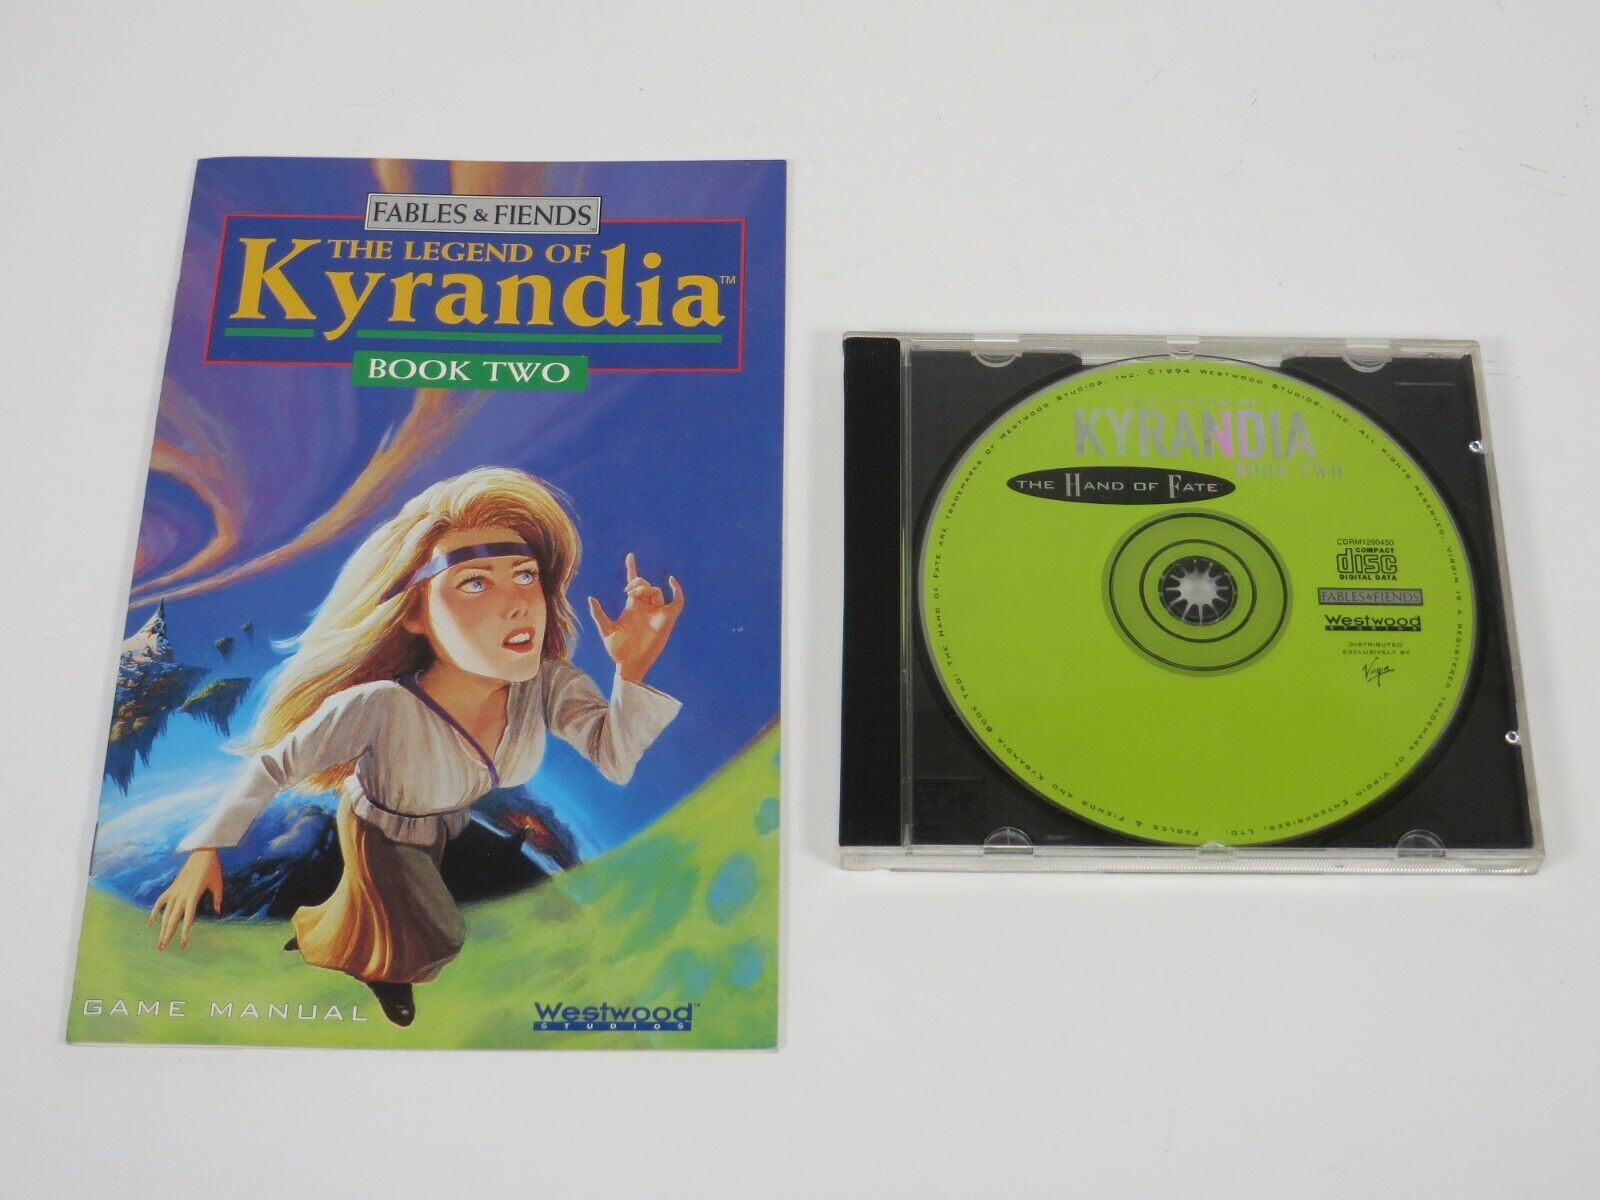 Computer Games - The Legend of Kyrandia Book Two: The Hand of Fate (PC, 1994) Computer Game